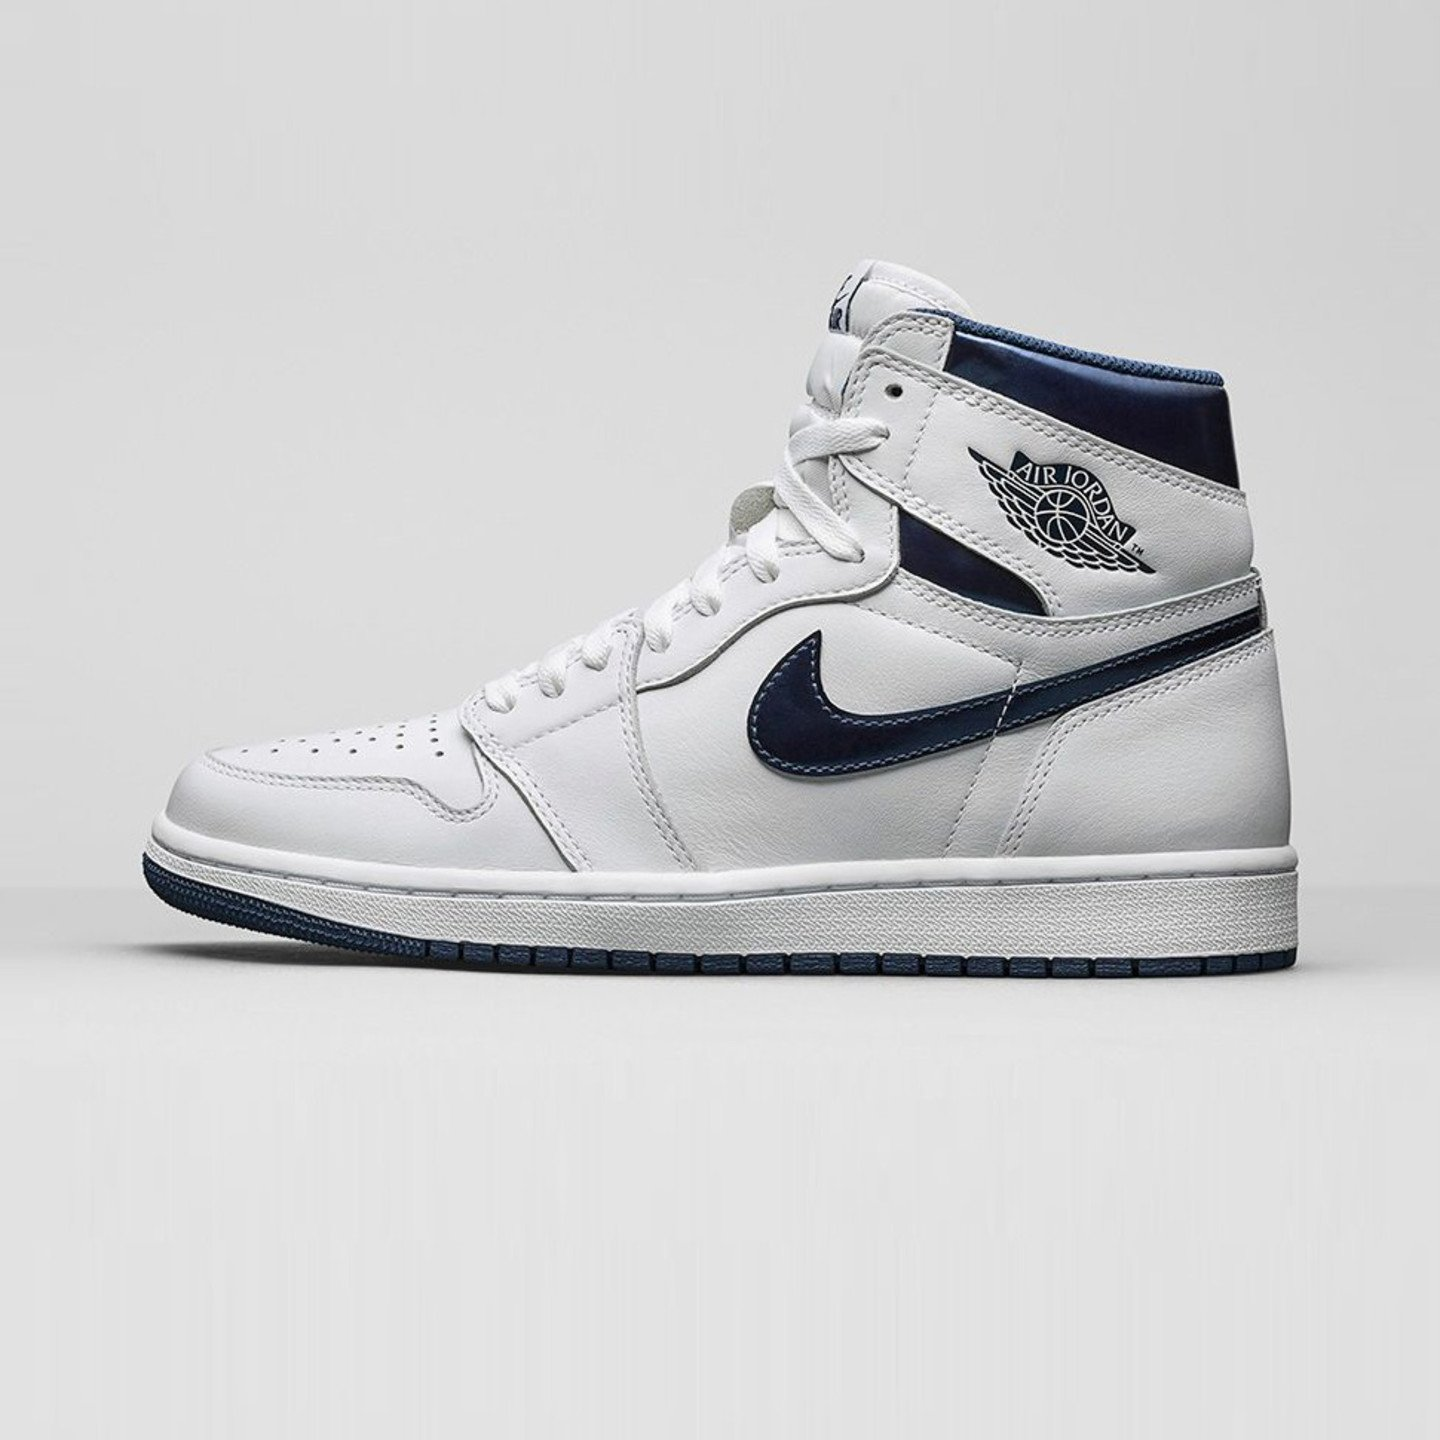 Jordan Air Jordan 1 Retro High OG 'Metallic Navy' White / Midnight Navy 555088-106-47.5